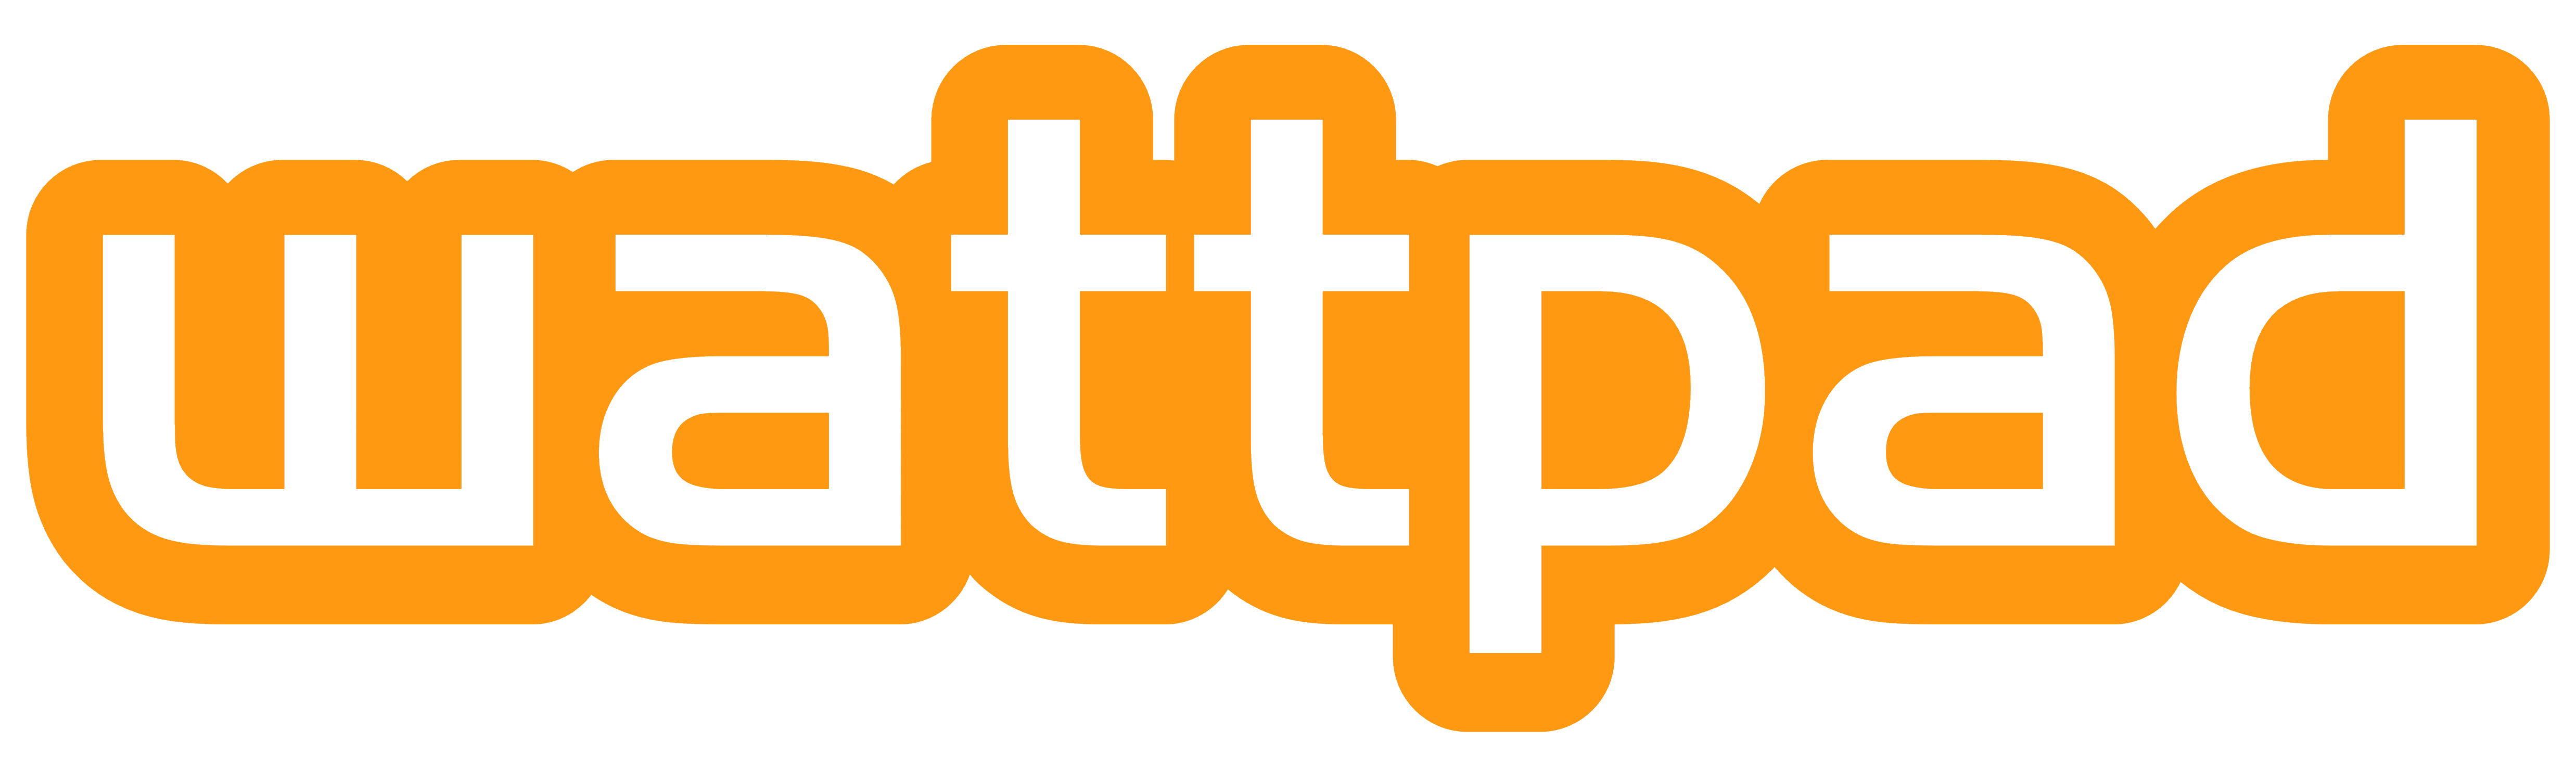 wattpad Find wattpad software downloads at cnet downloadcom, the most comprehensive source for safe, trusted, and spyware-free downloads on the web.